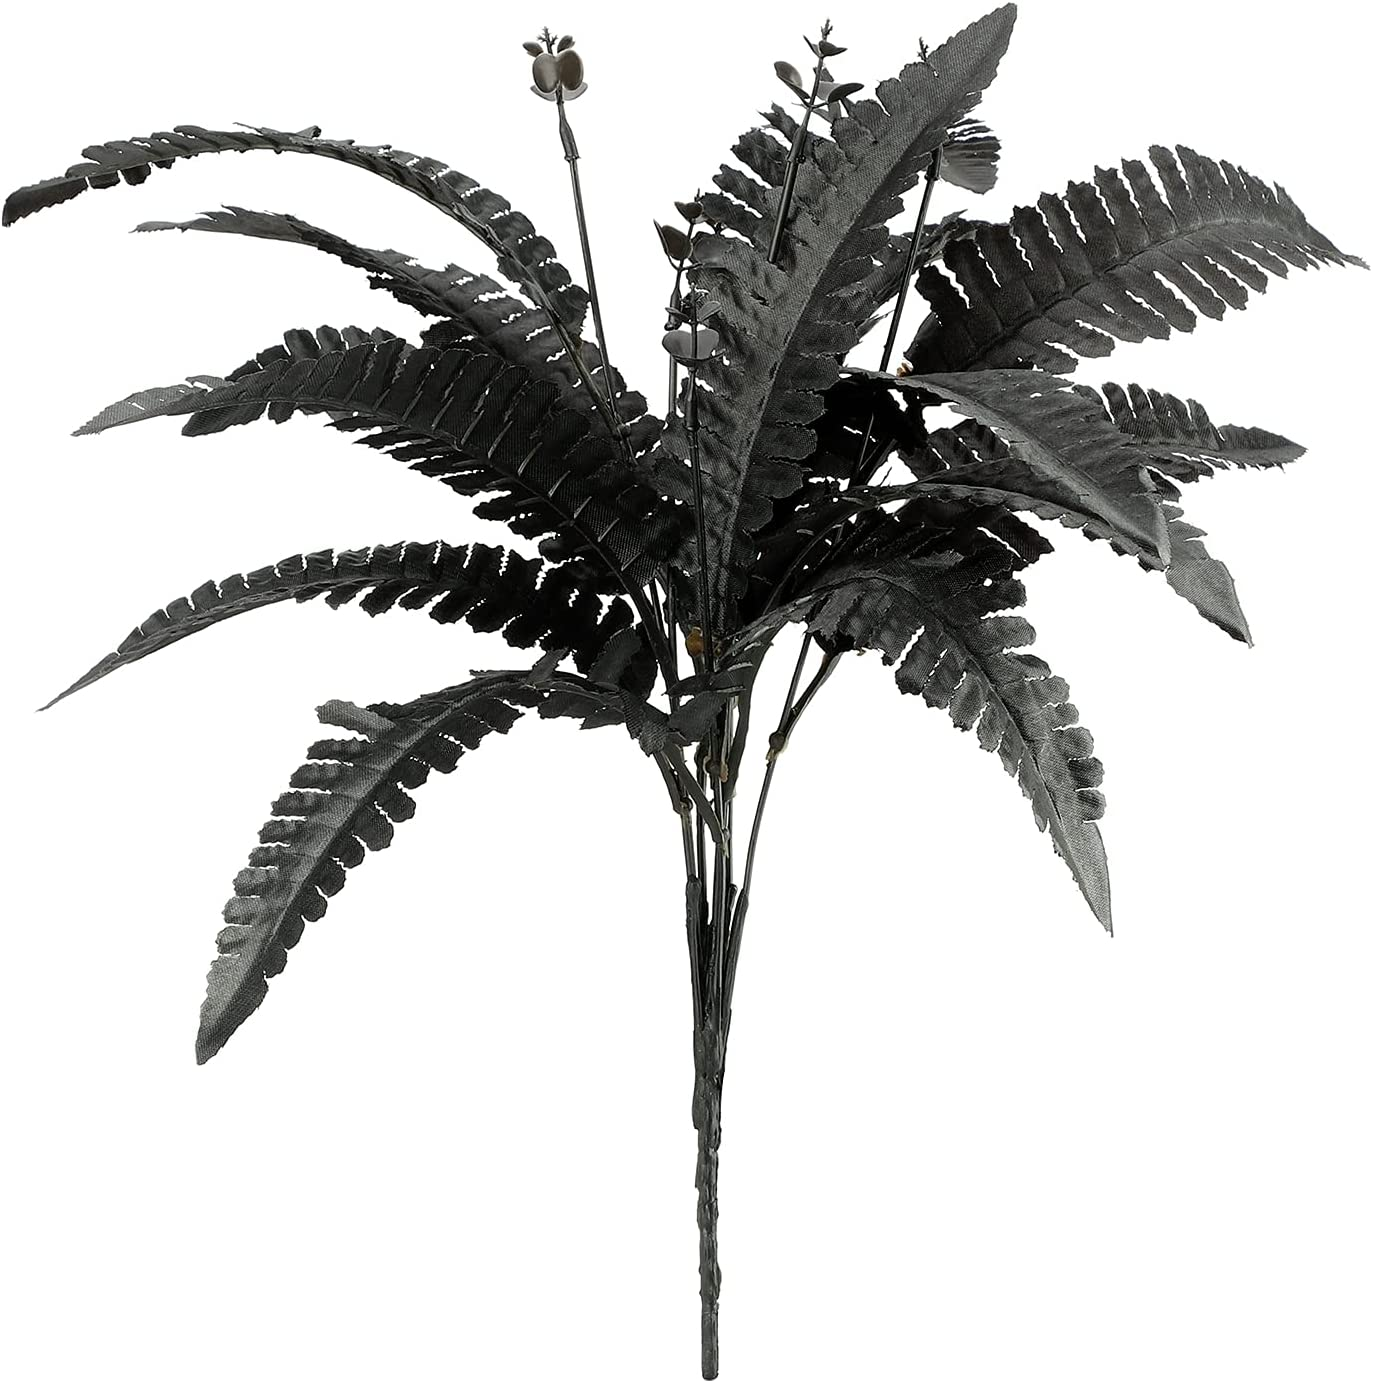 JFBUCF Los Angeles Mall 5pcs Artificial Persian Leaves Ferns Black Fake Pers Silk Selling rankings